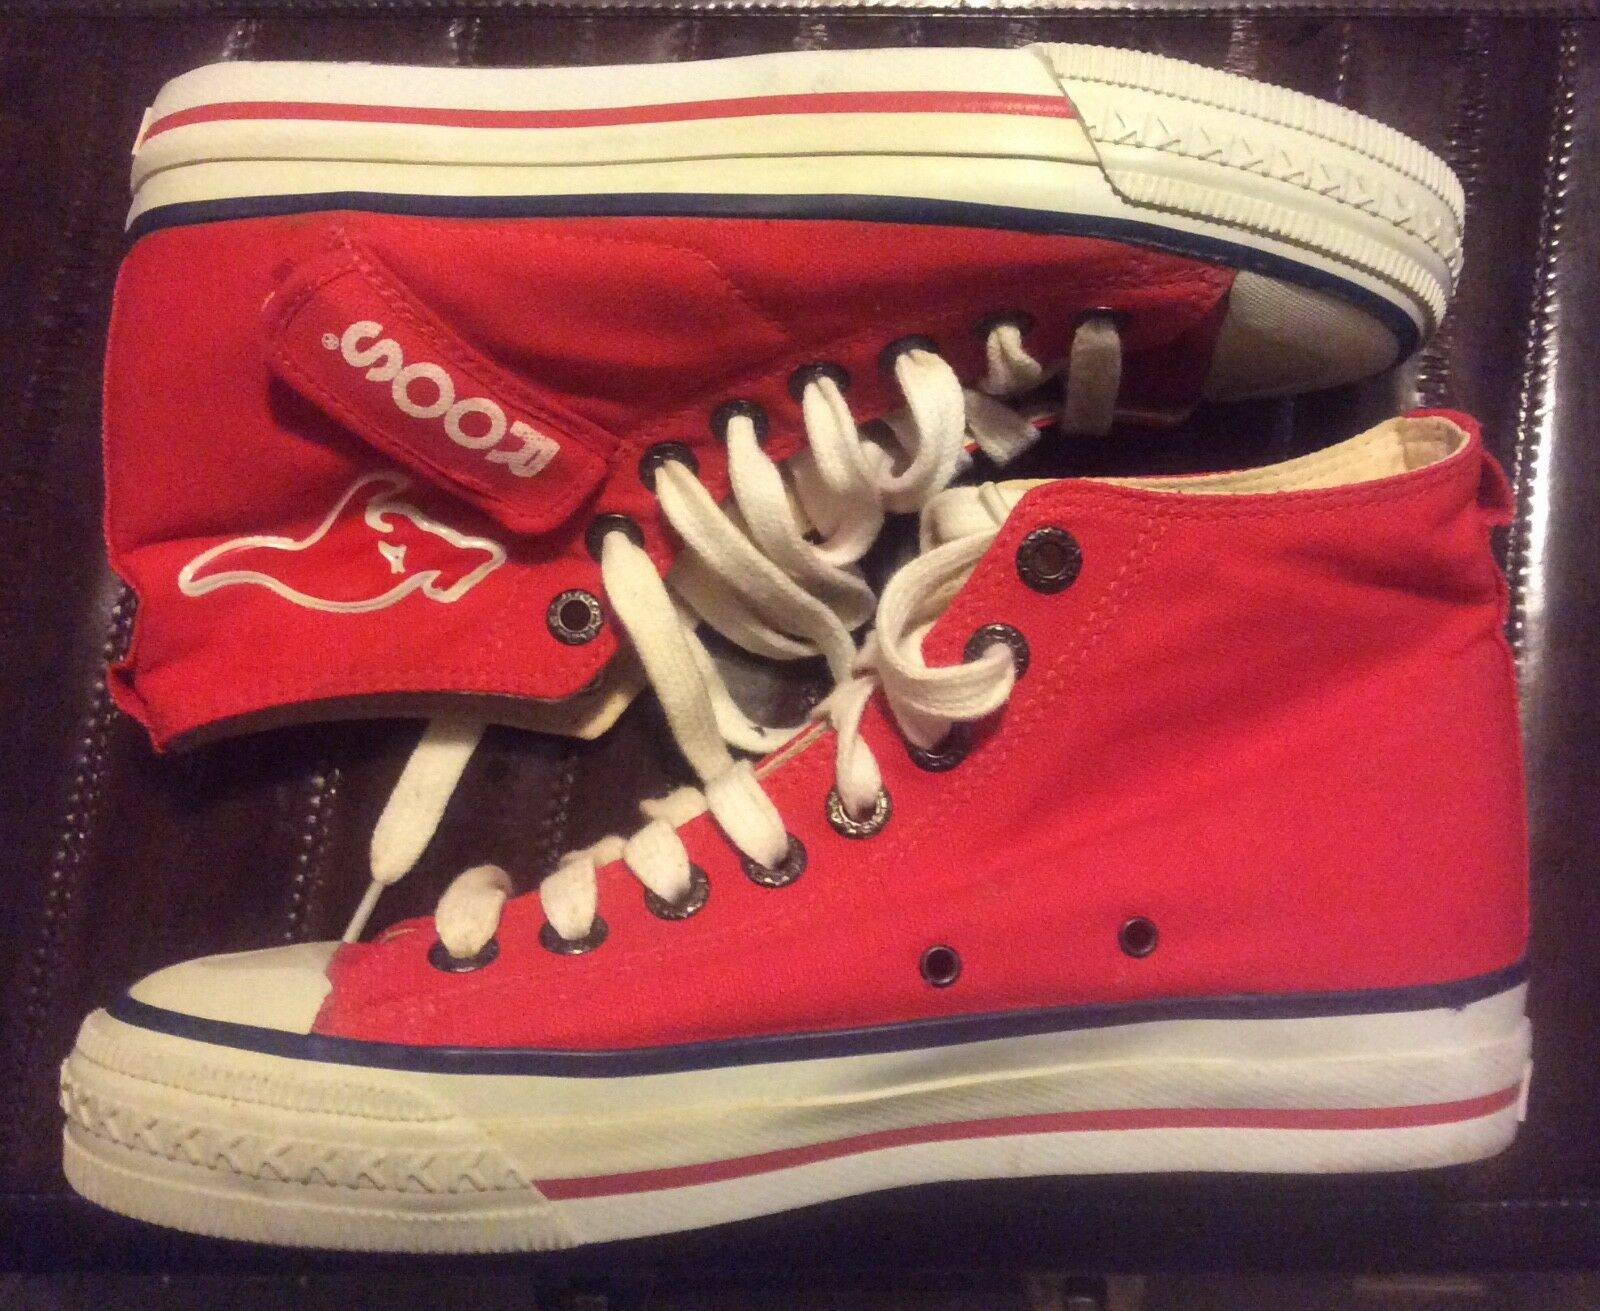 Hopping Awesome! 80s Vintage KangaRoos High Top Red Sneakers~Pockets~Size 8 USA